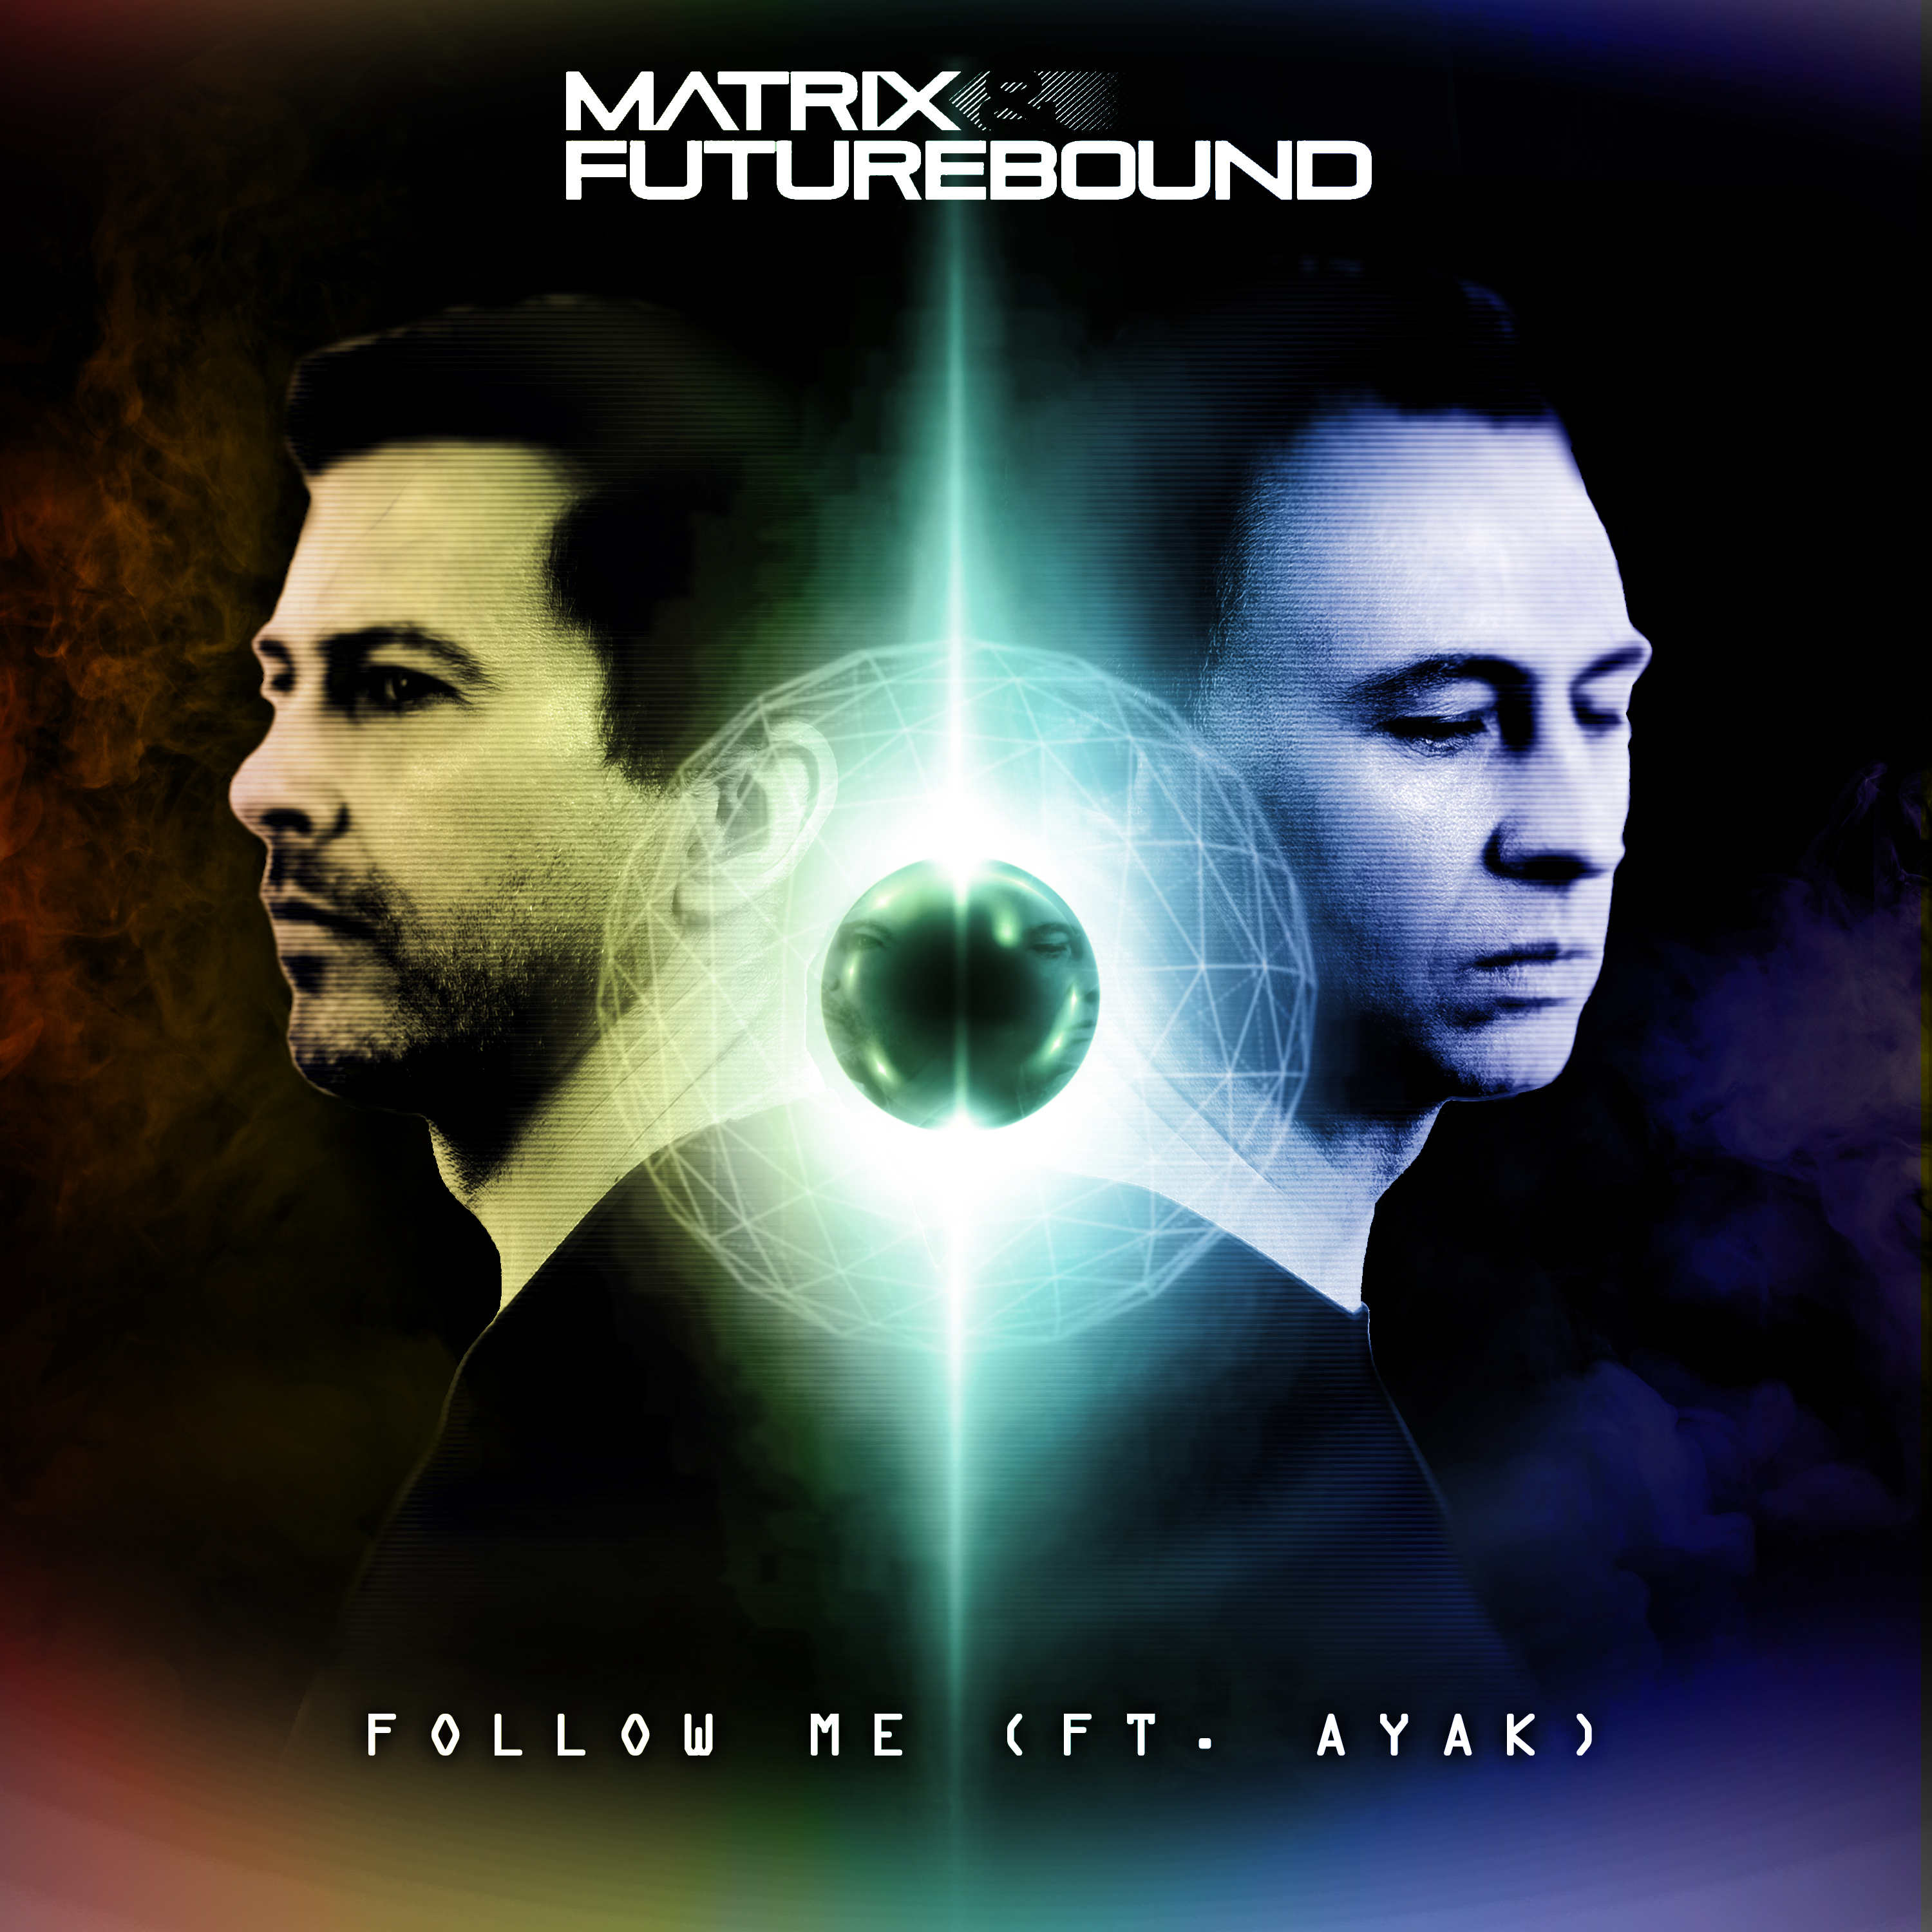 Matrix & Futurebound - Follow Me (ft. Ayak)